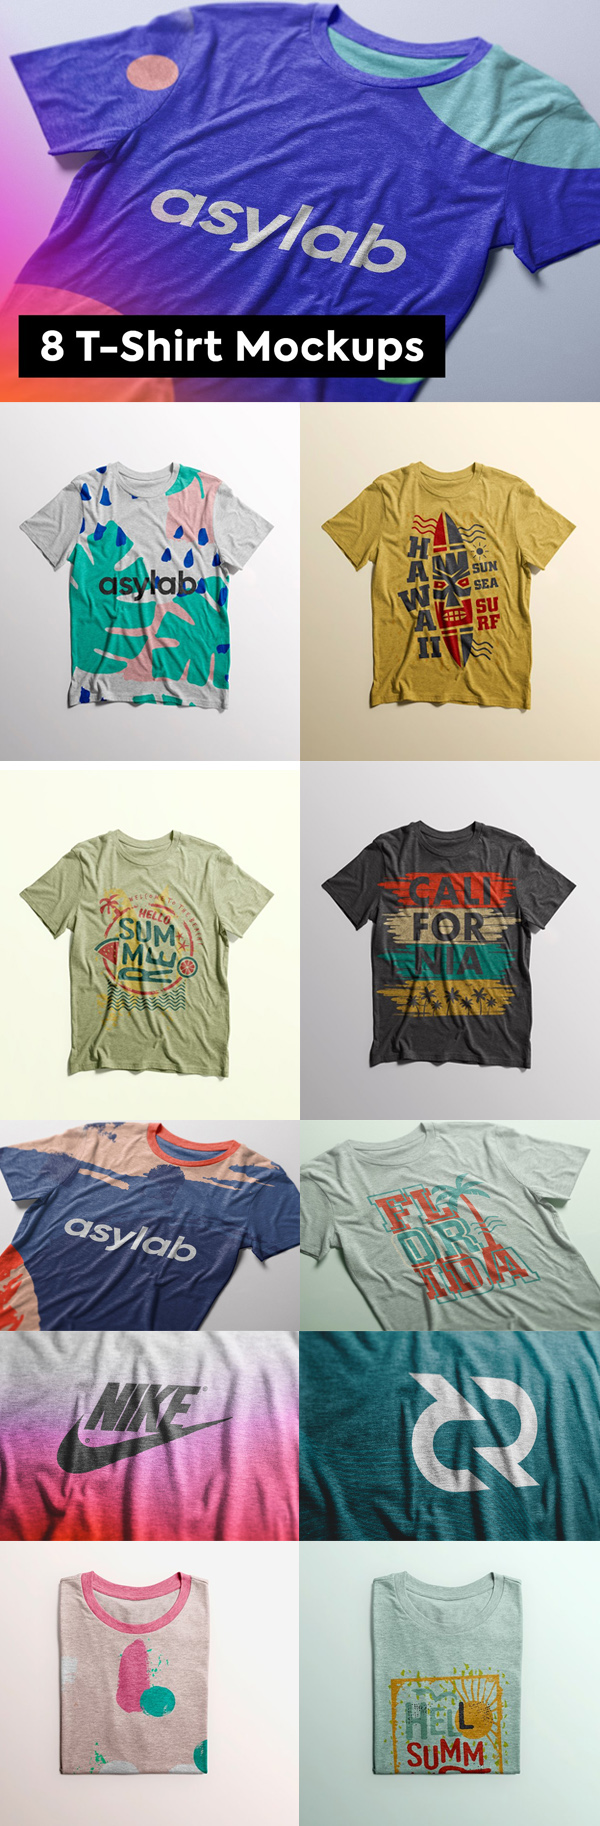 Stylish T-Shirt Mockups